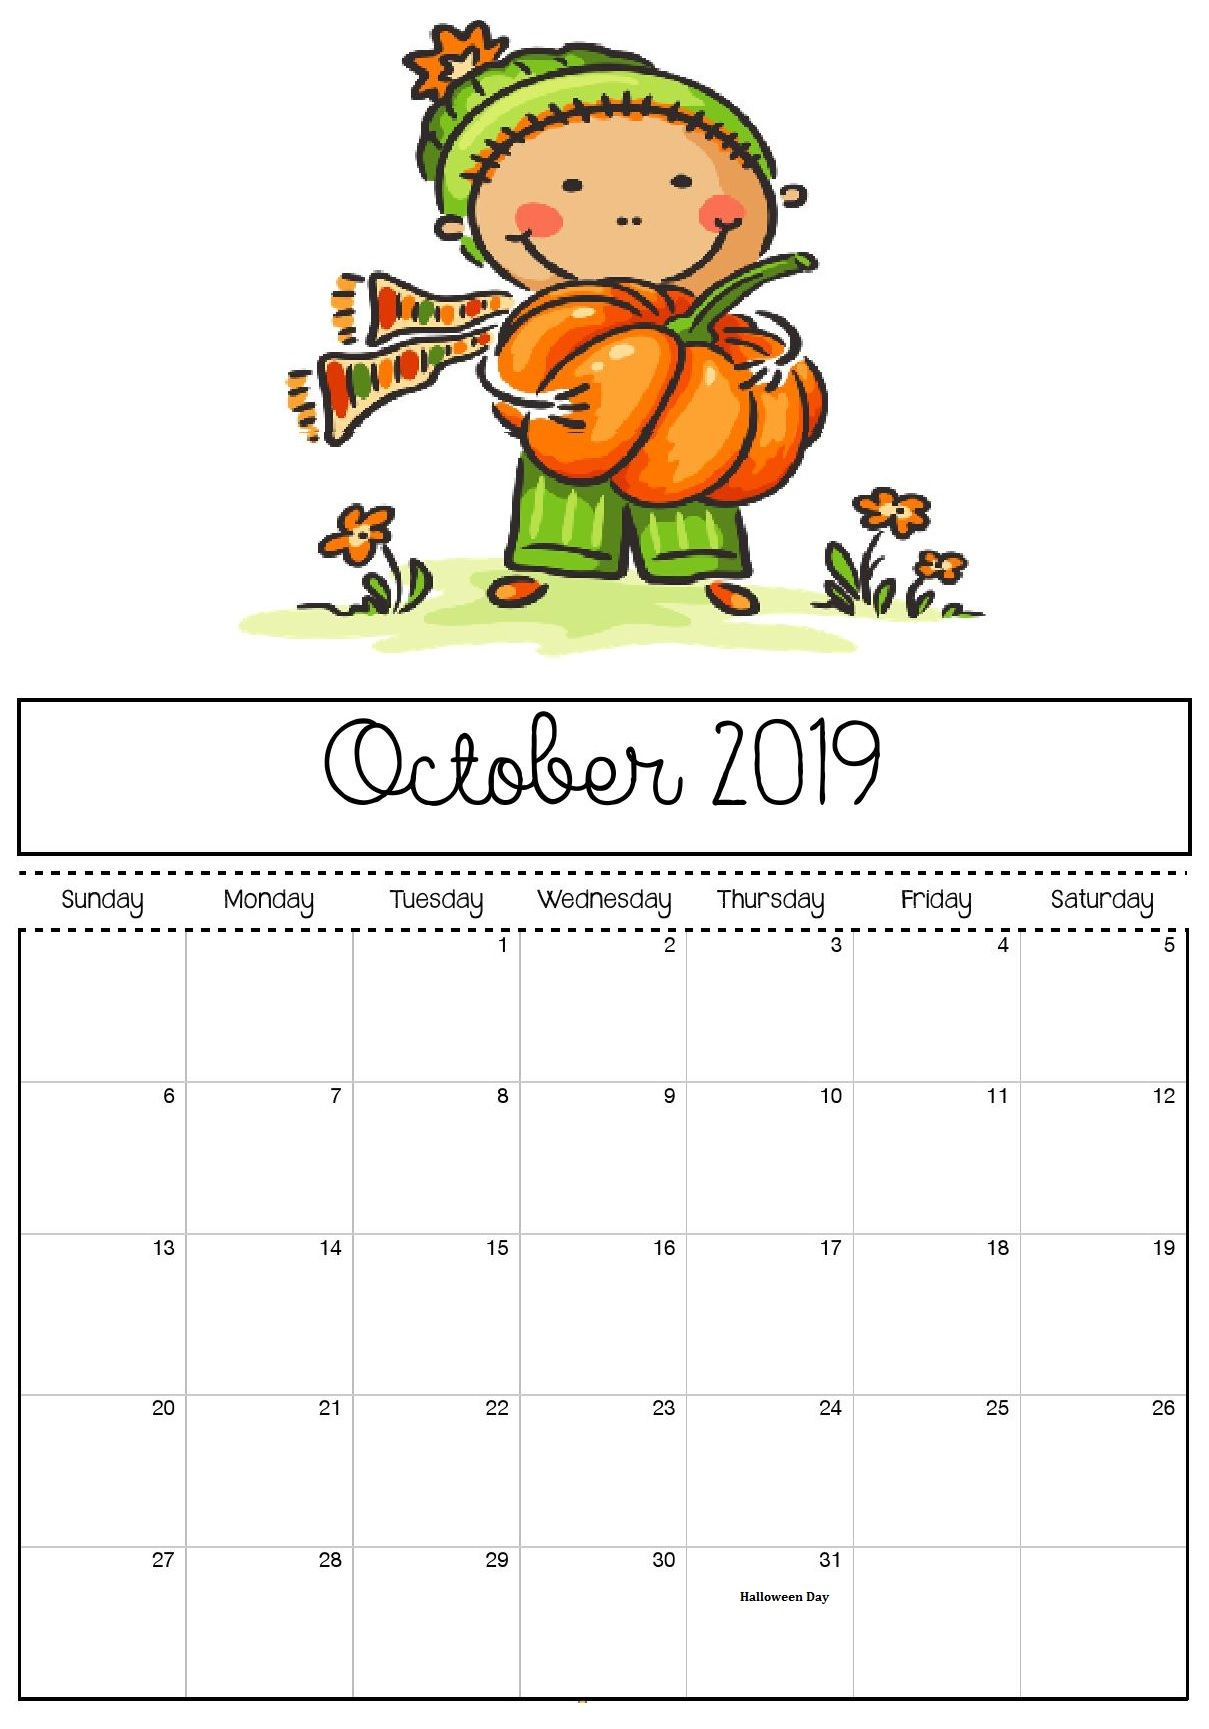 October 2019 Calendar With Images Kids Calendar Calendar